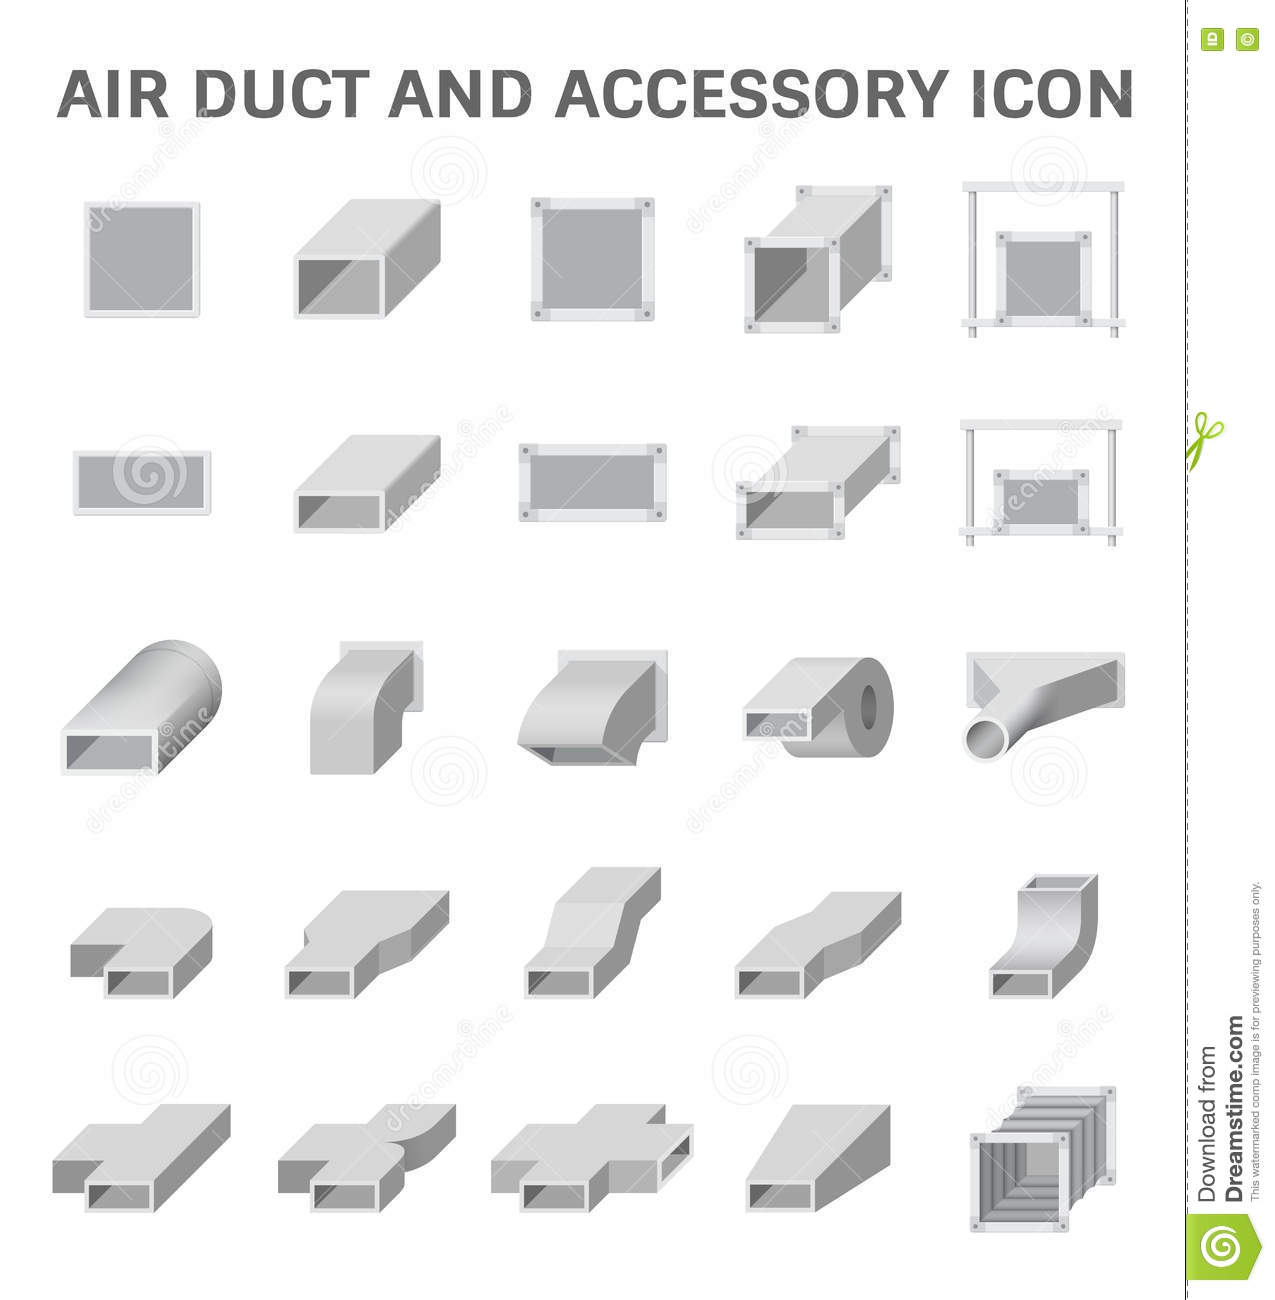 Air duct cleaning stock illustrations 68 air duct cleaning stock air duct icon vector icon of air duct and accessory for air conditioning or hvac buycottarizona Image collections